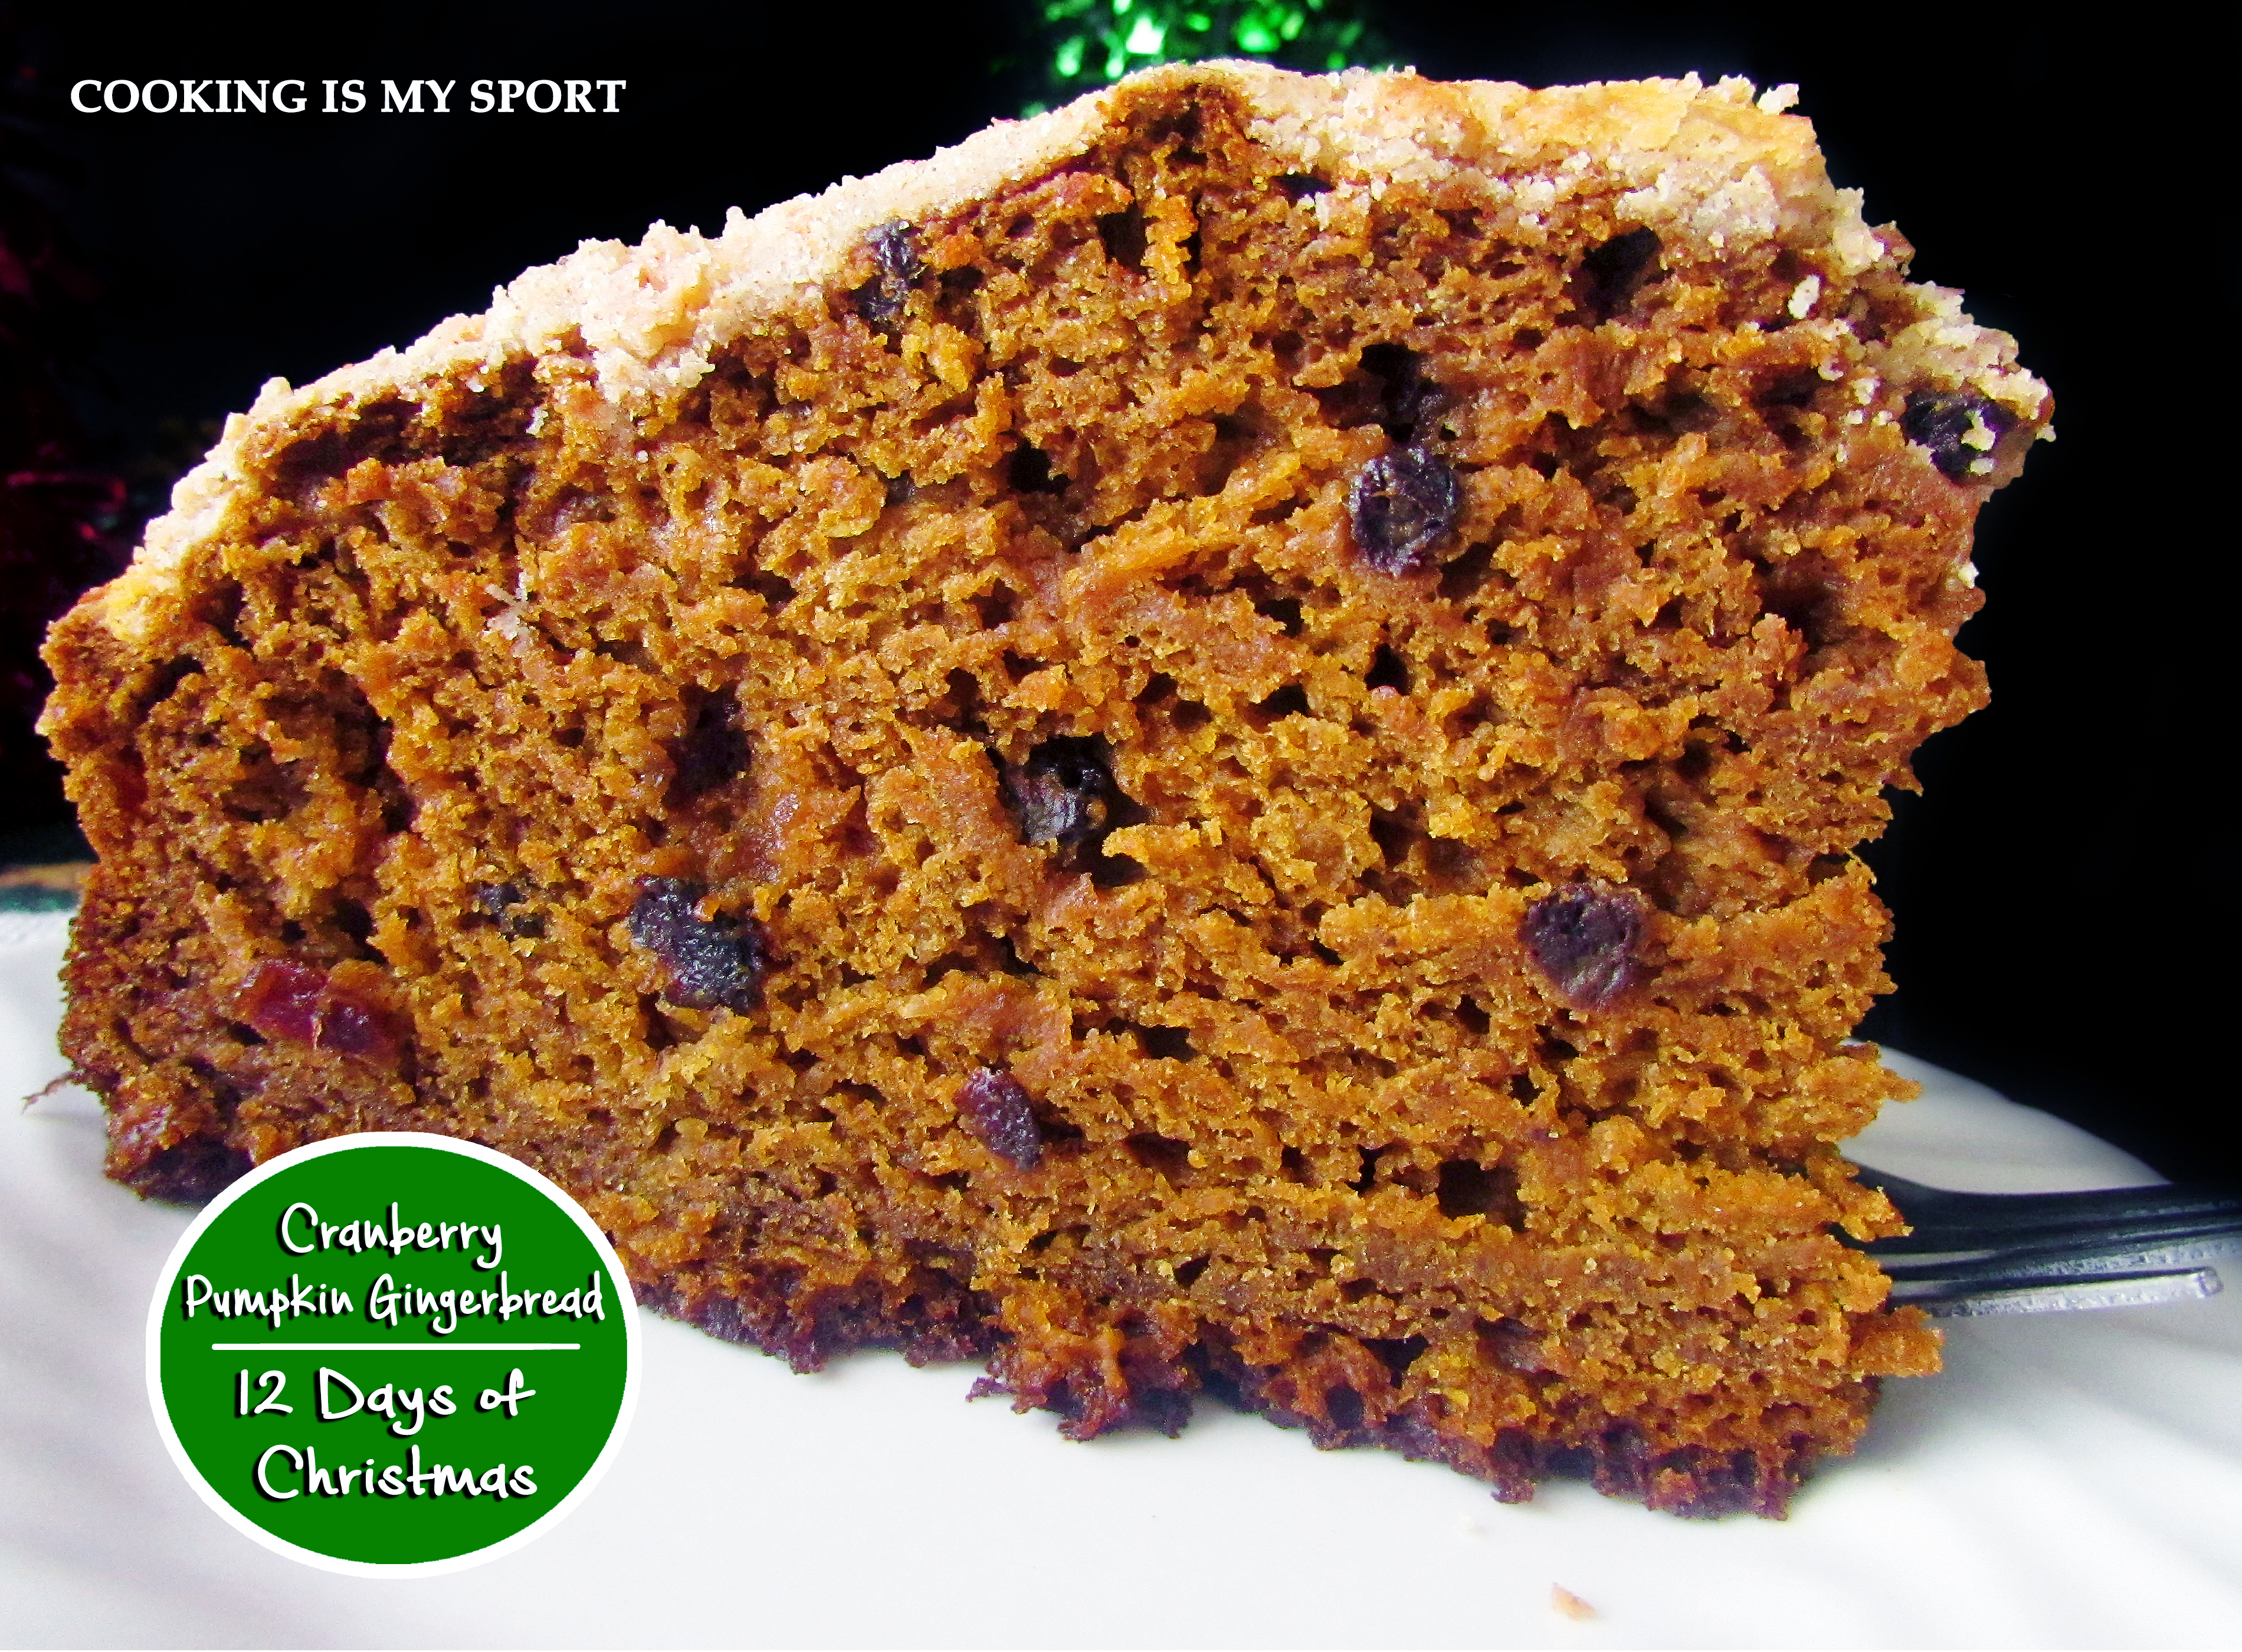 Cranberry Pumpkin Gingerbread5